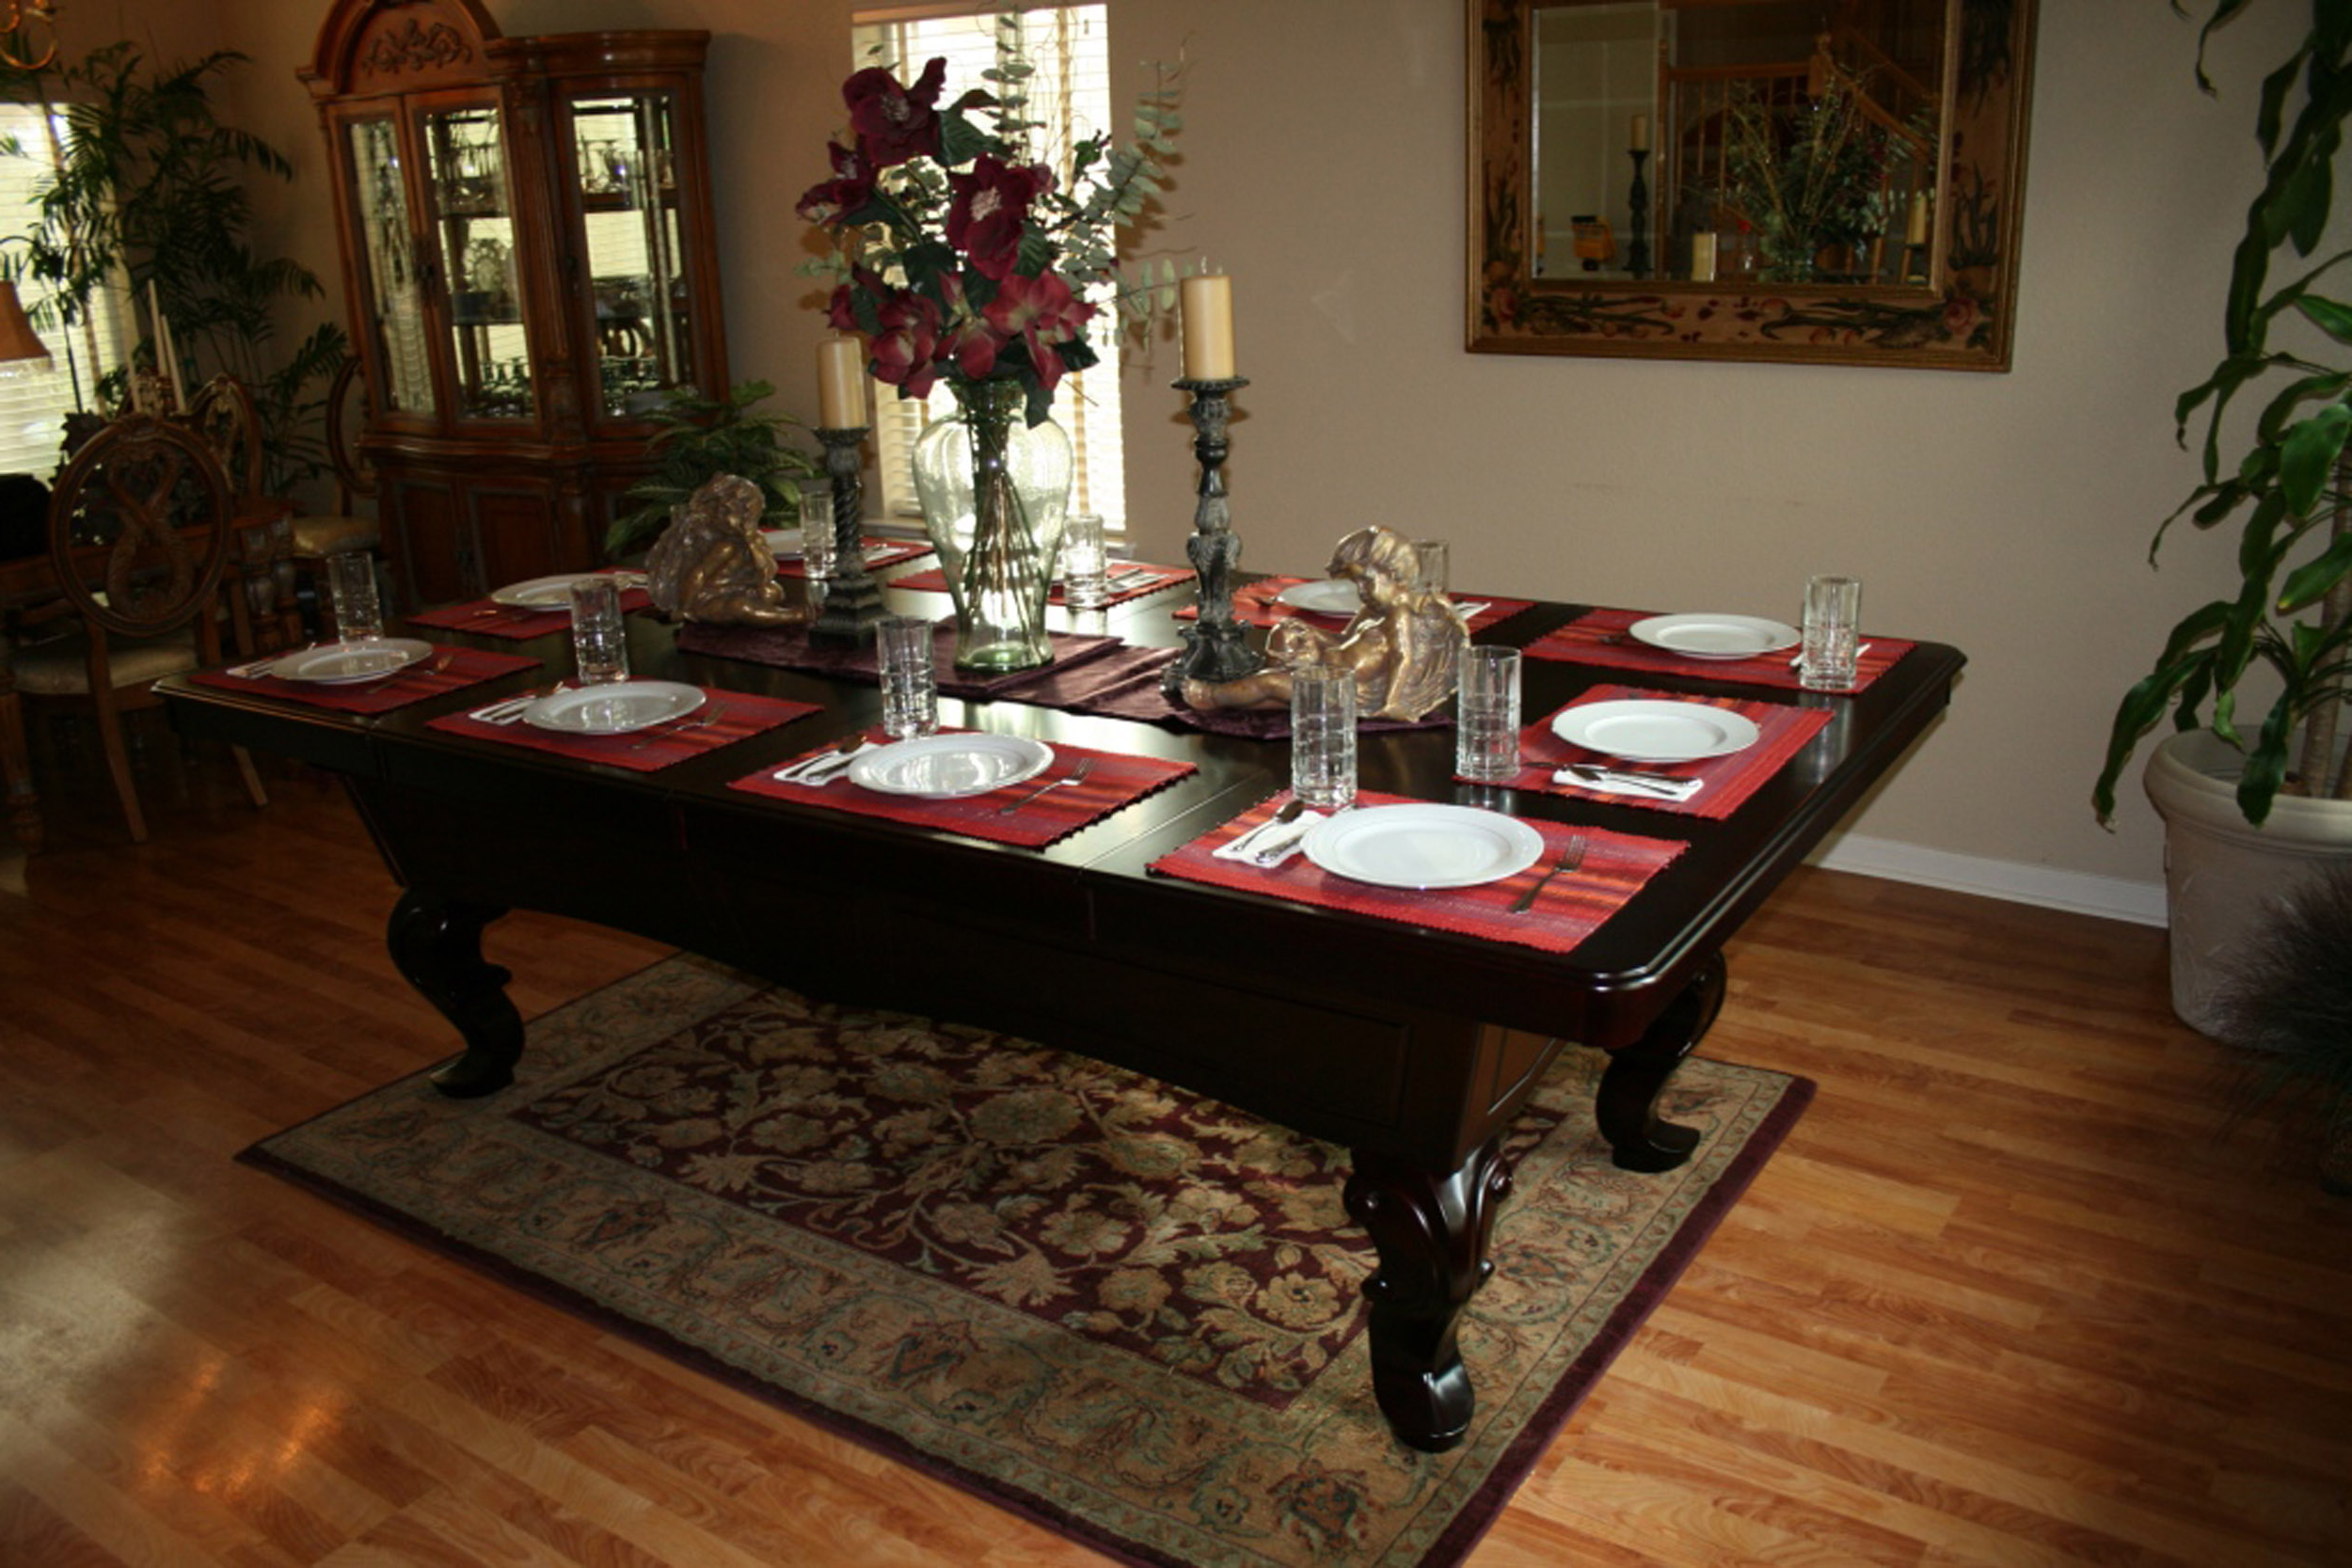 Amazing Pool Table Dining Top Pool Tables Dining Room Table (View 6 of 28)